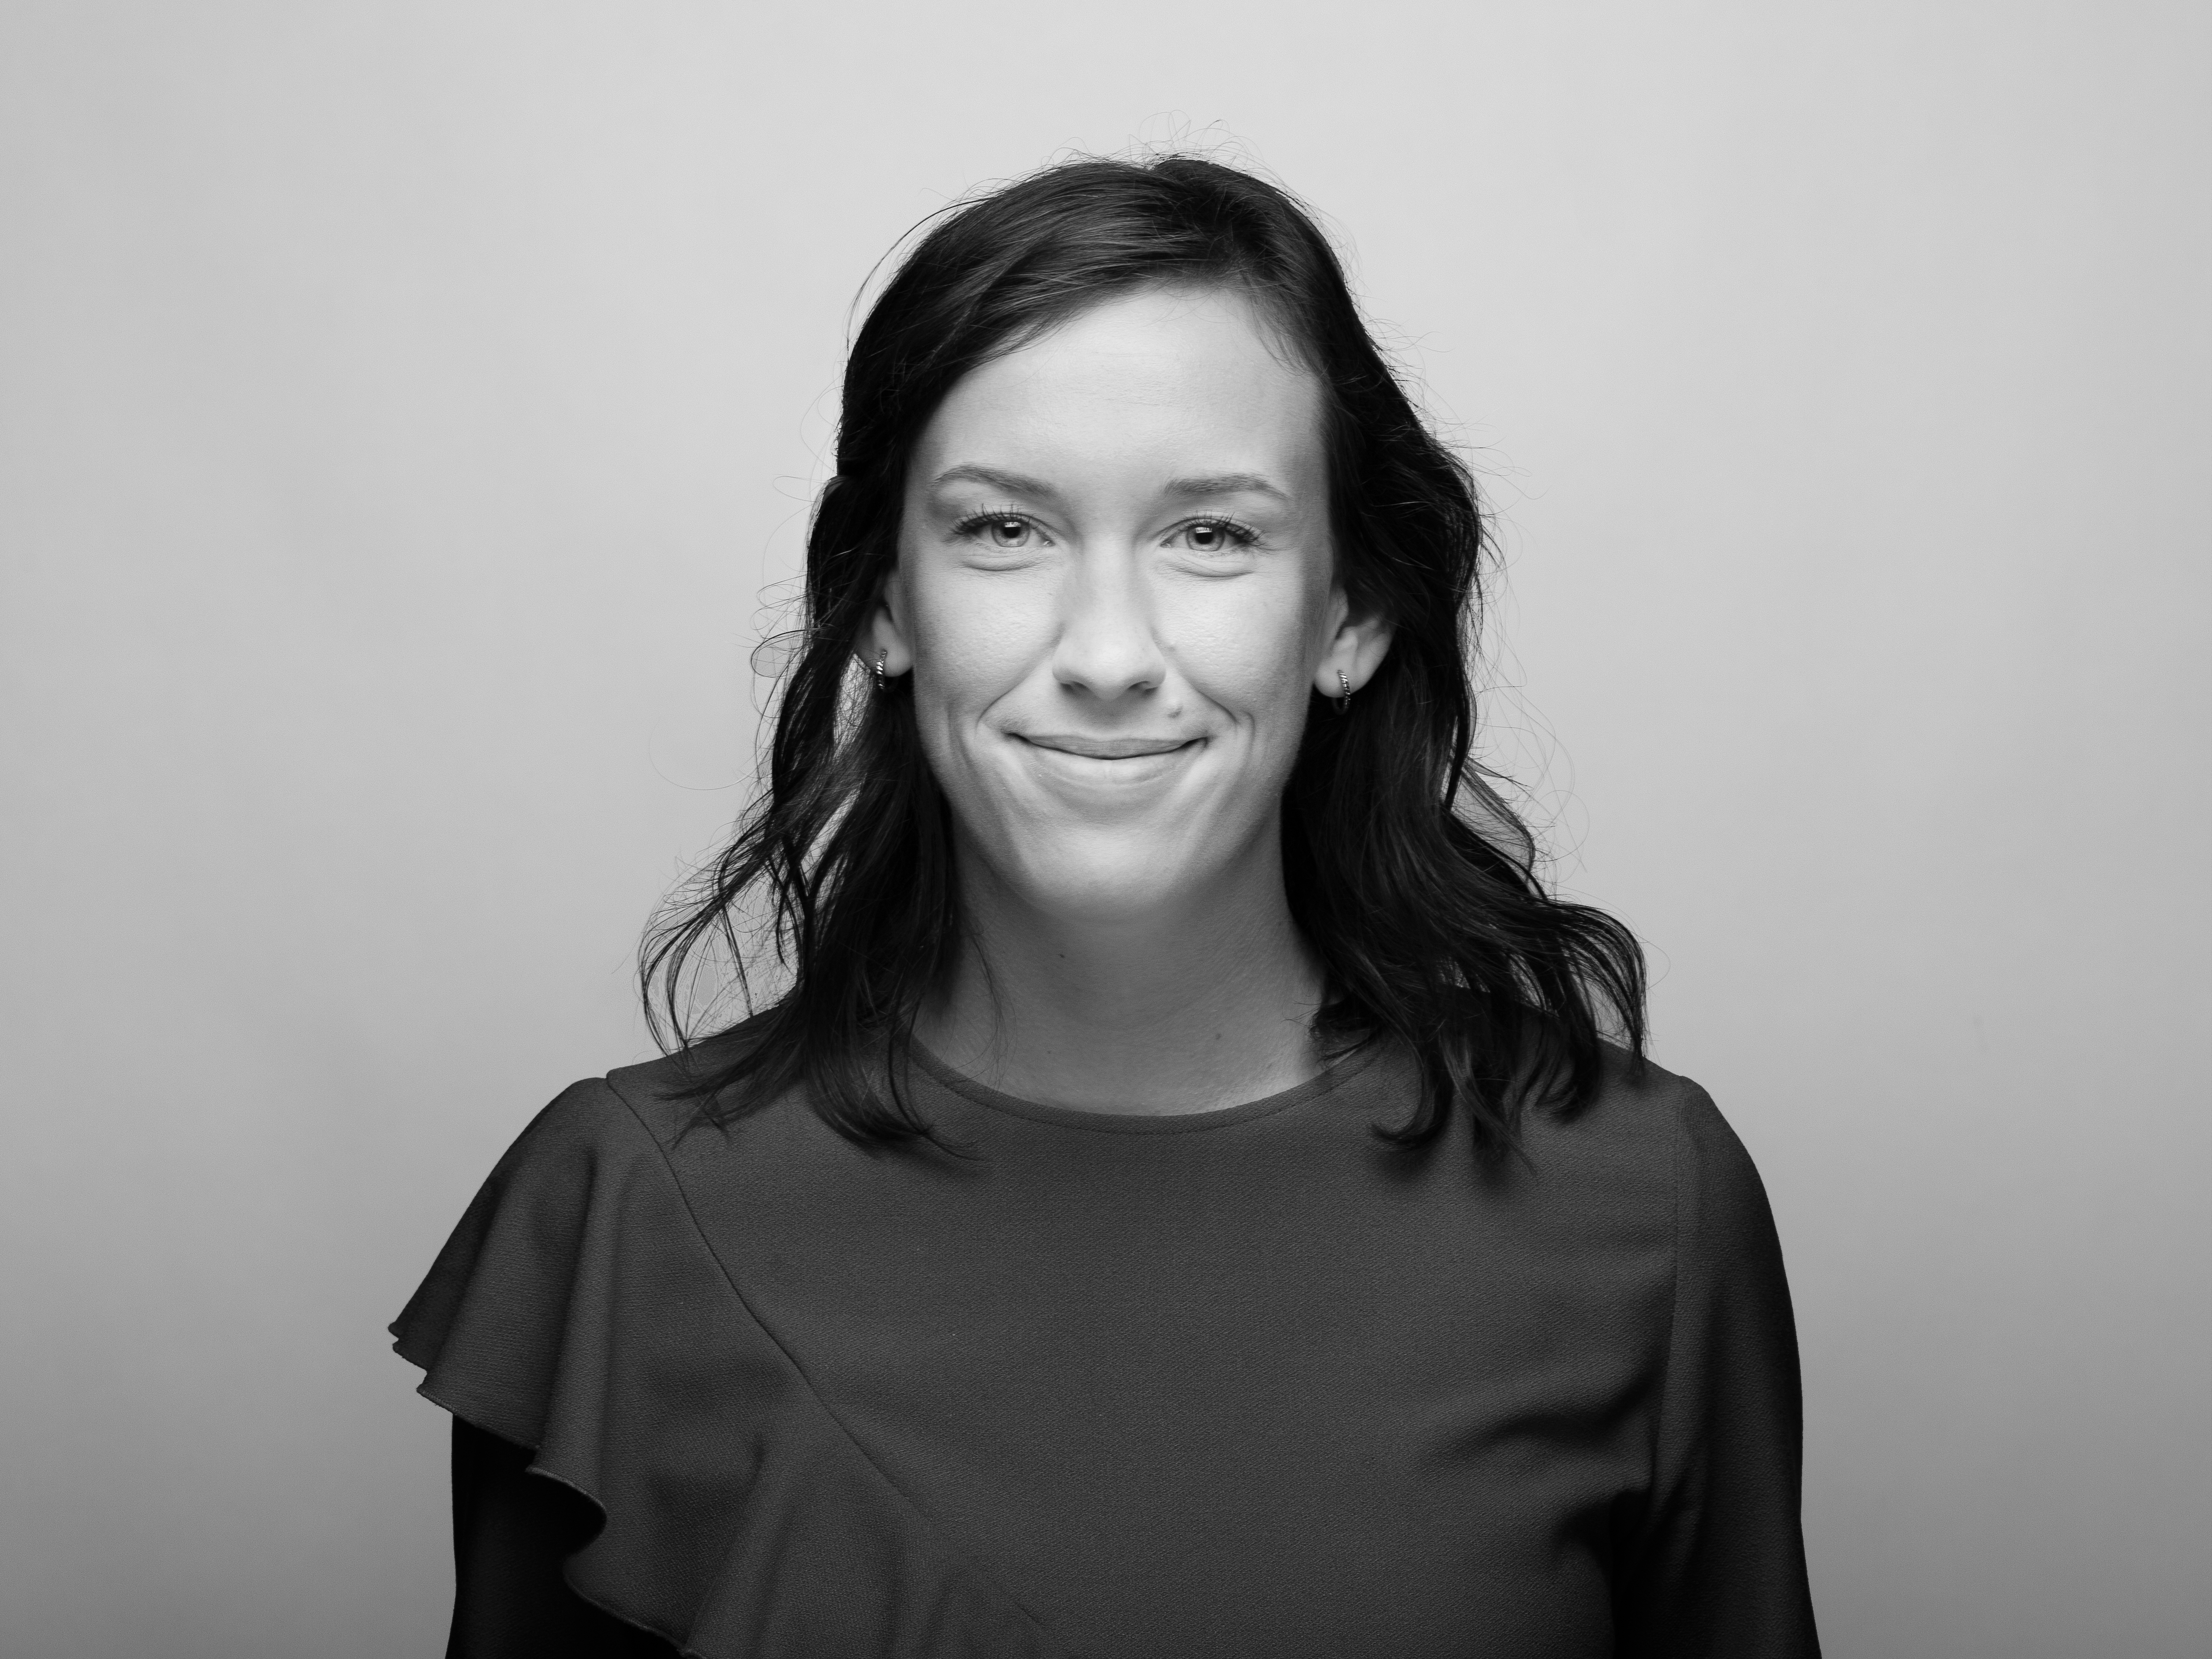 TAGARNO Marketing Manager Gitte Engkjaer